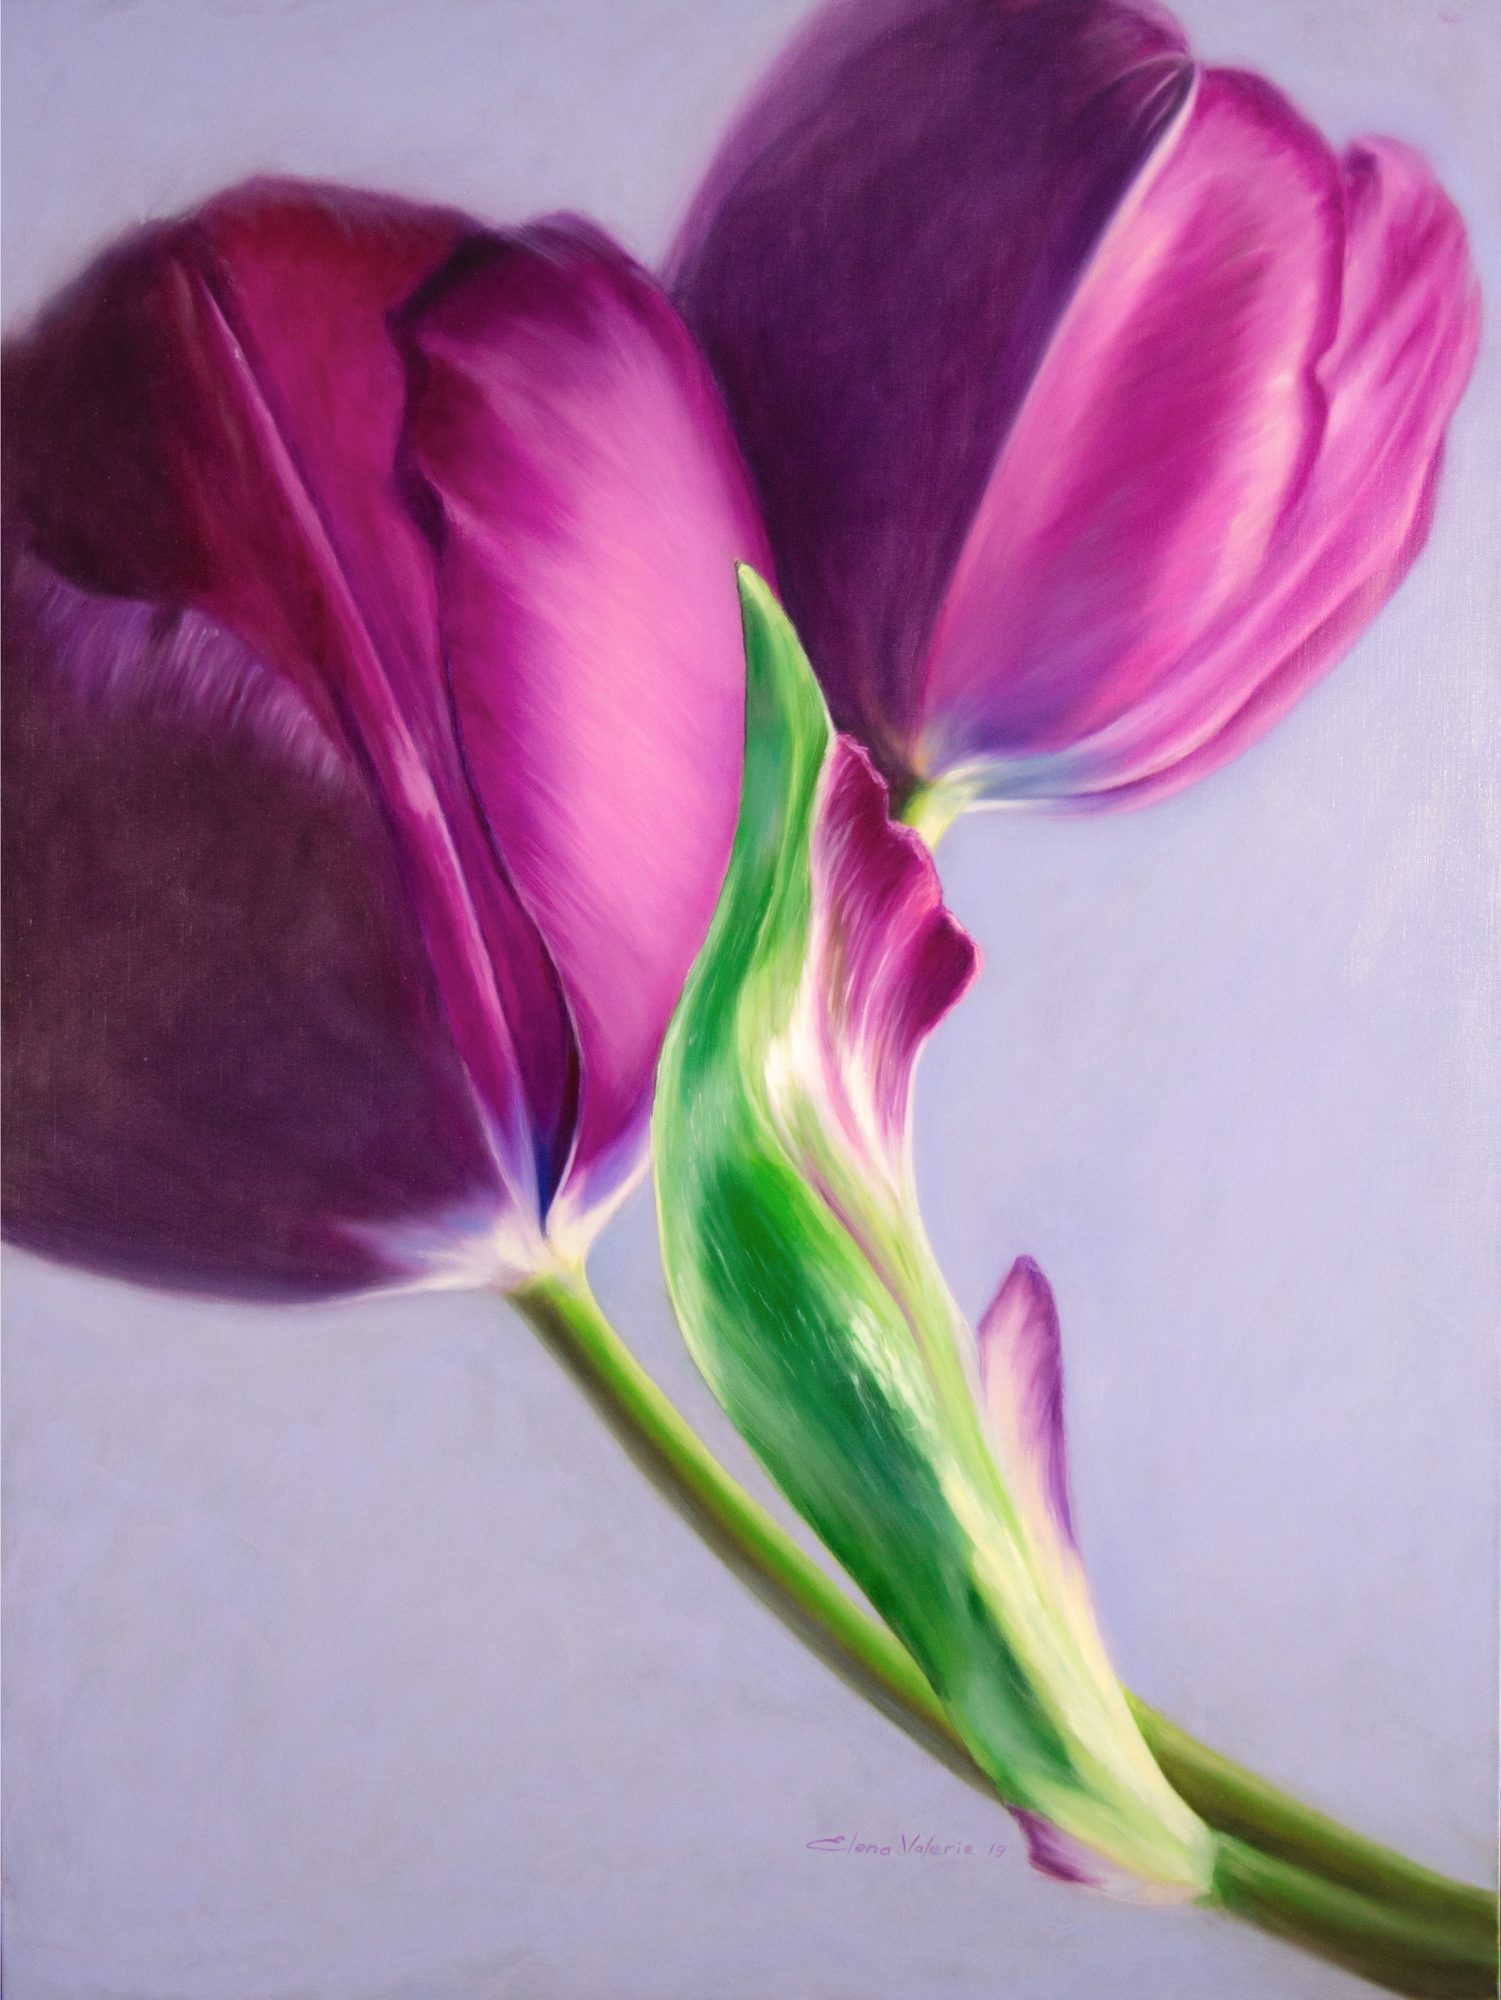 Story Of The Tulip Elena Valerie 2019